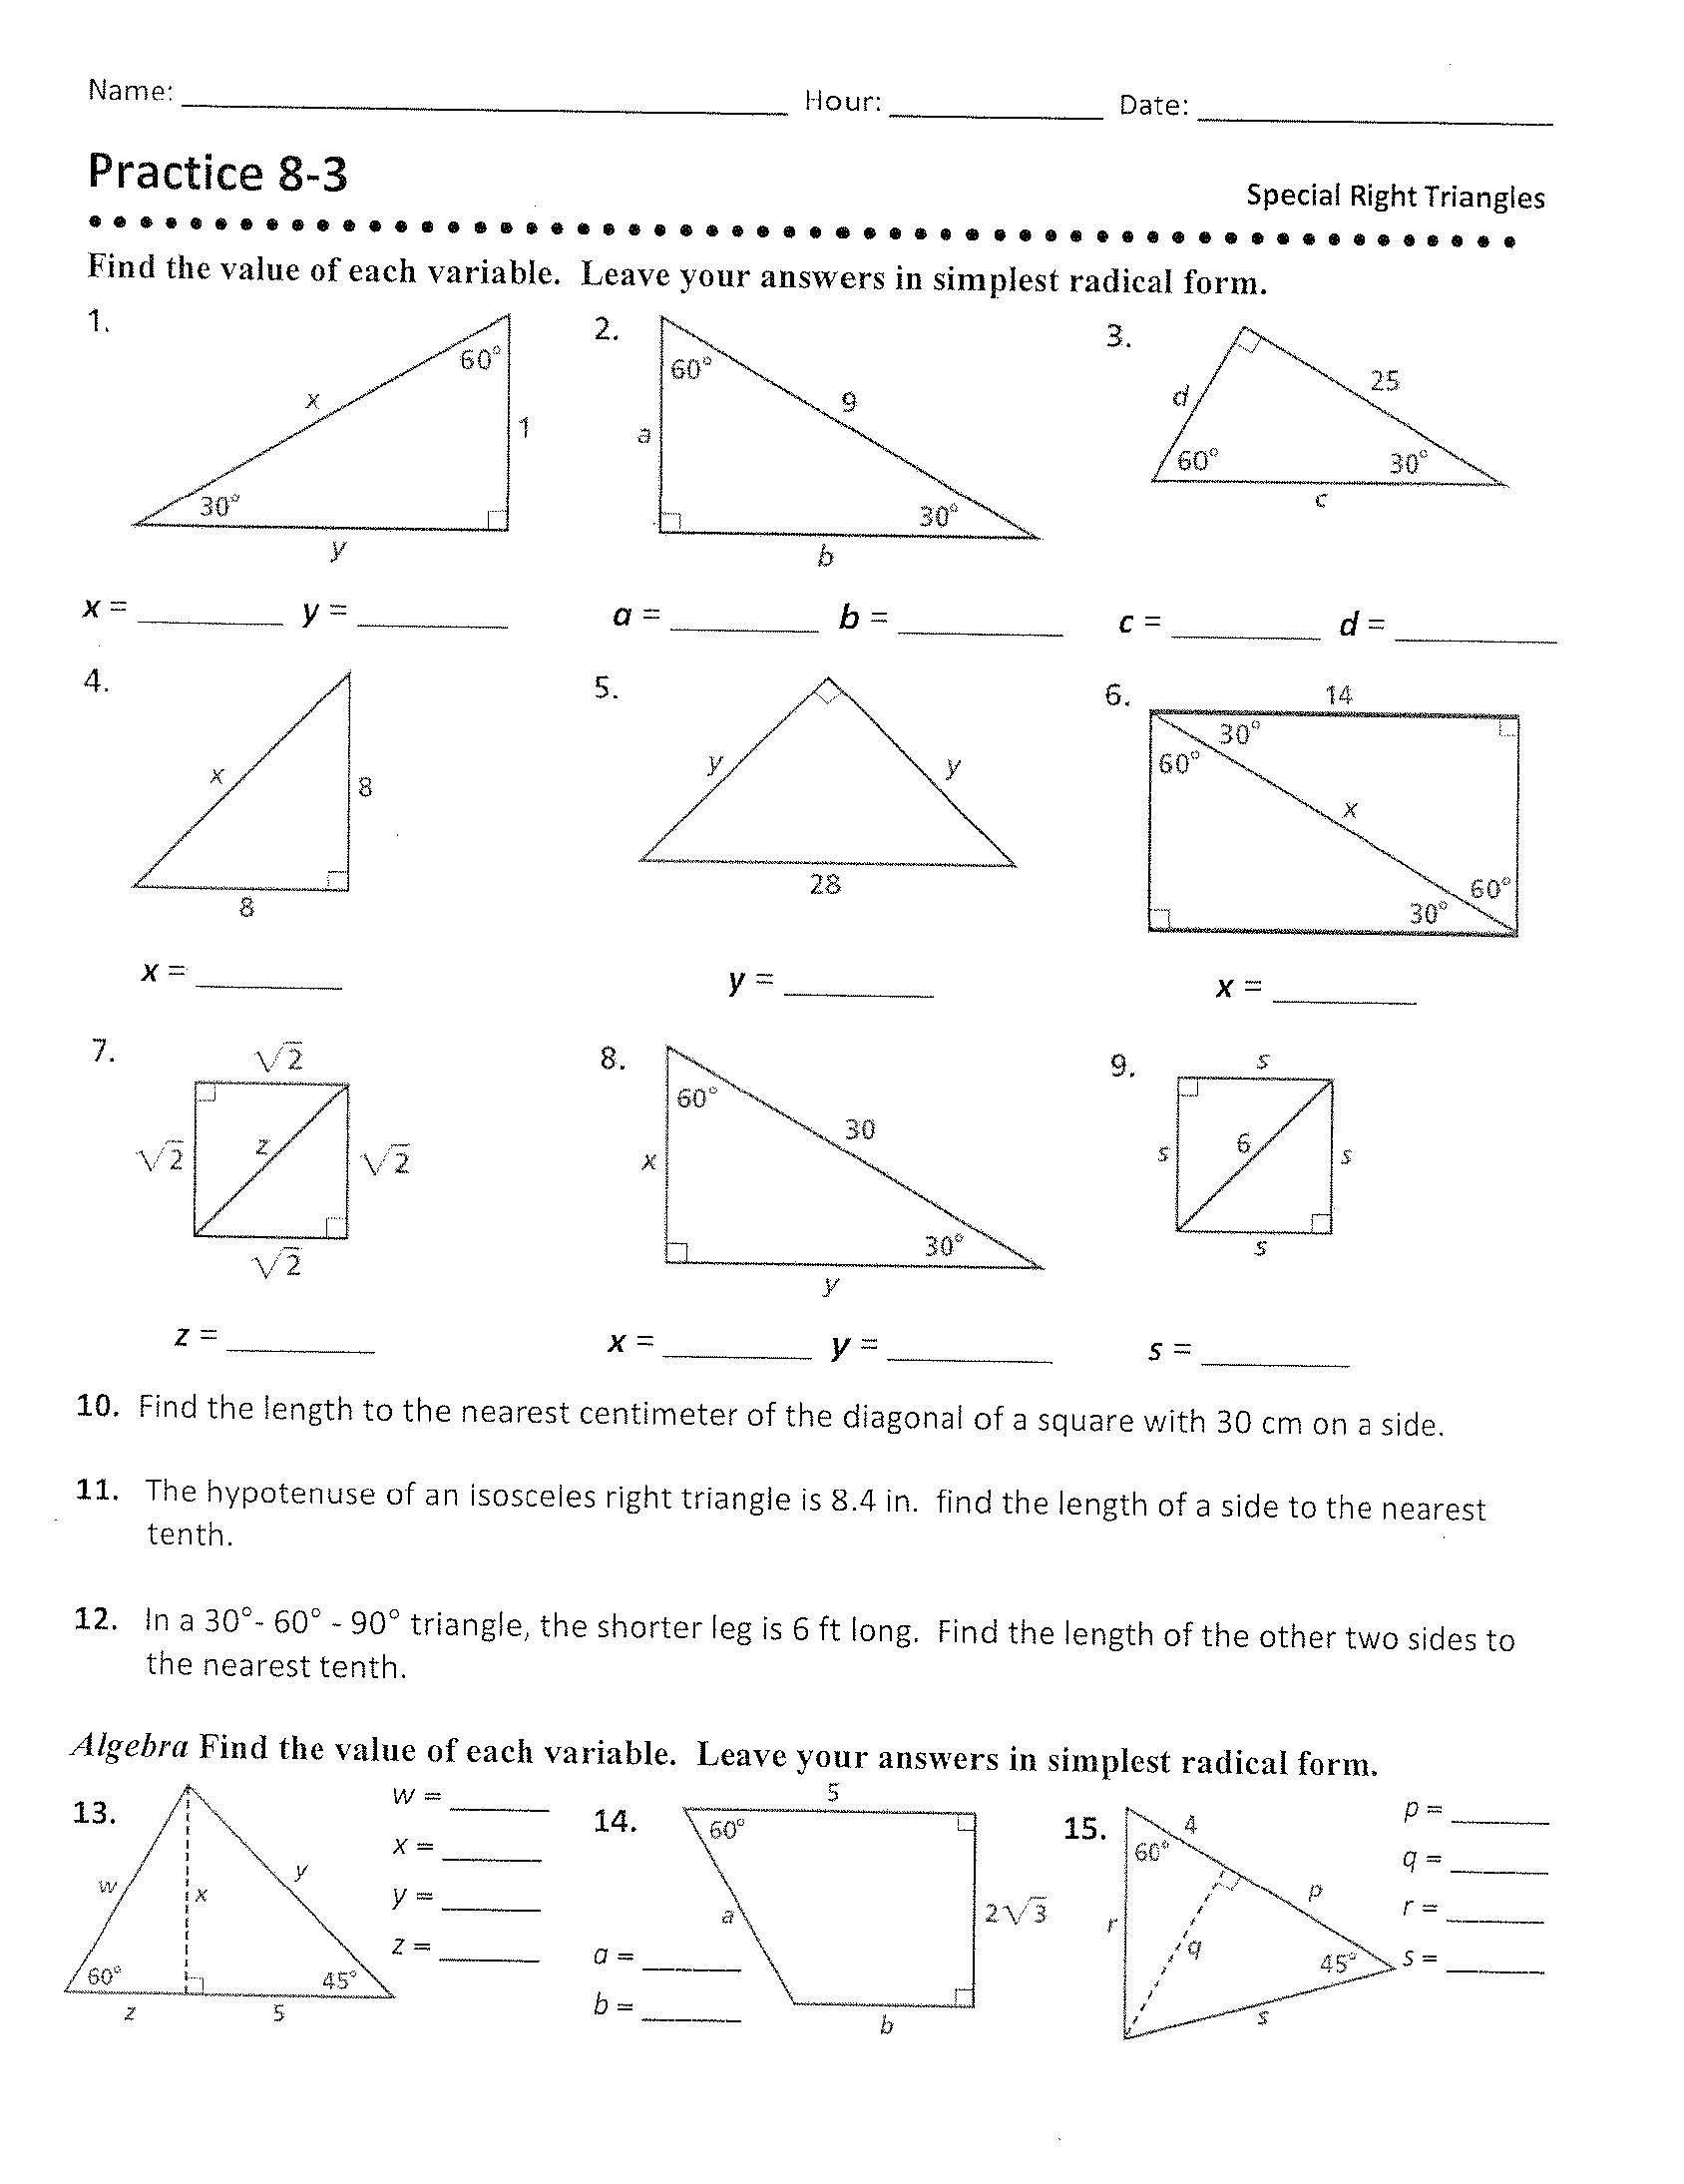 Special Right Triangles Coloring Activity Answer Key Cute766 [ 2189 x 1688 Pixel ]